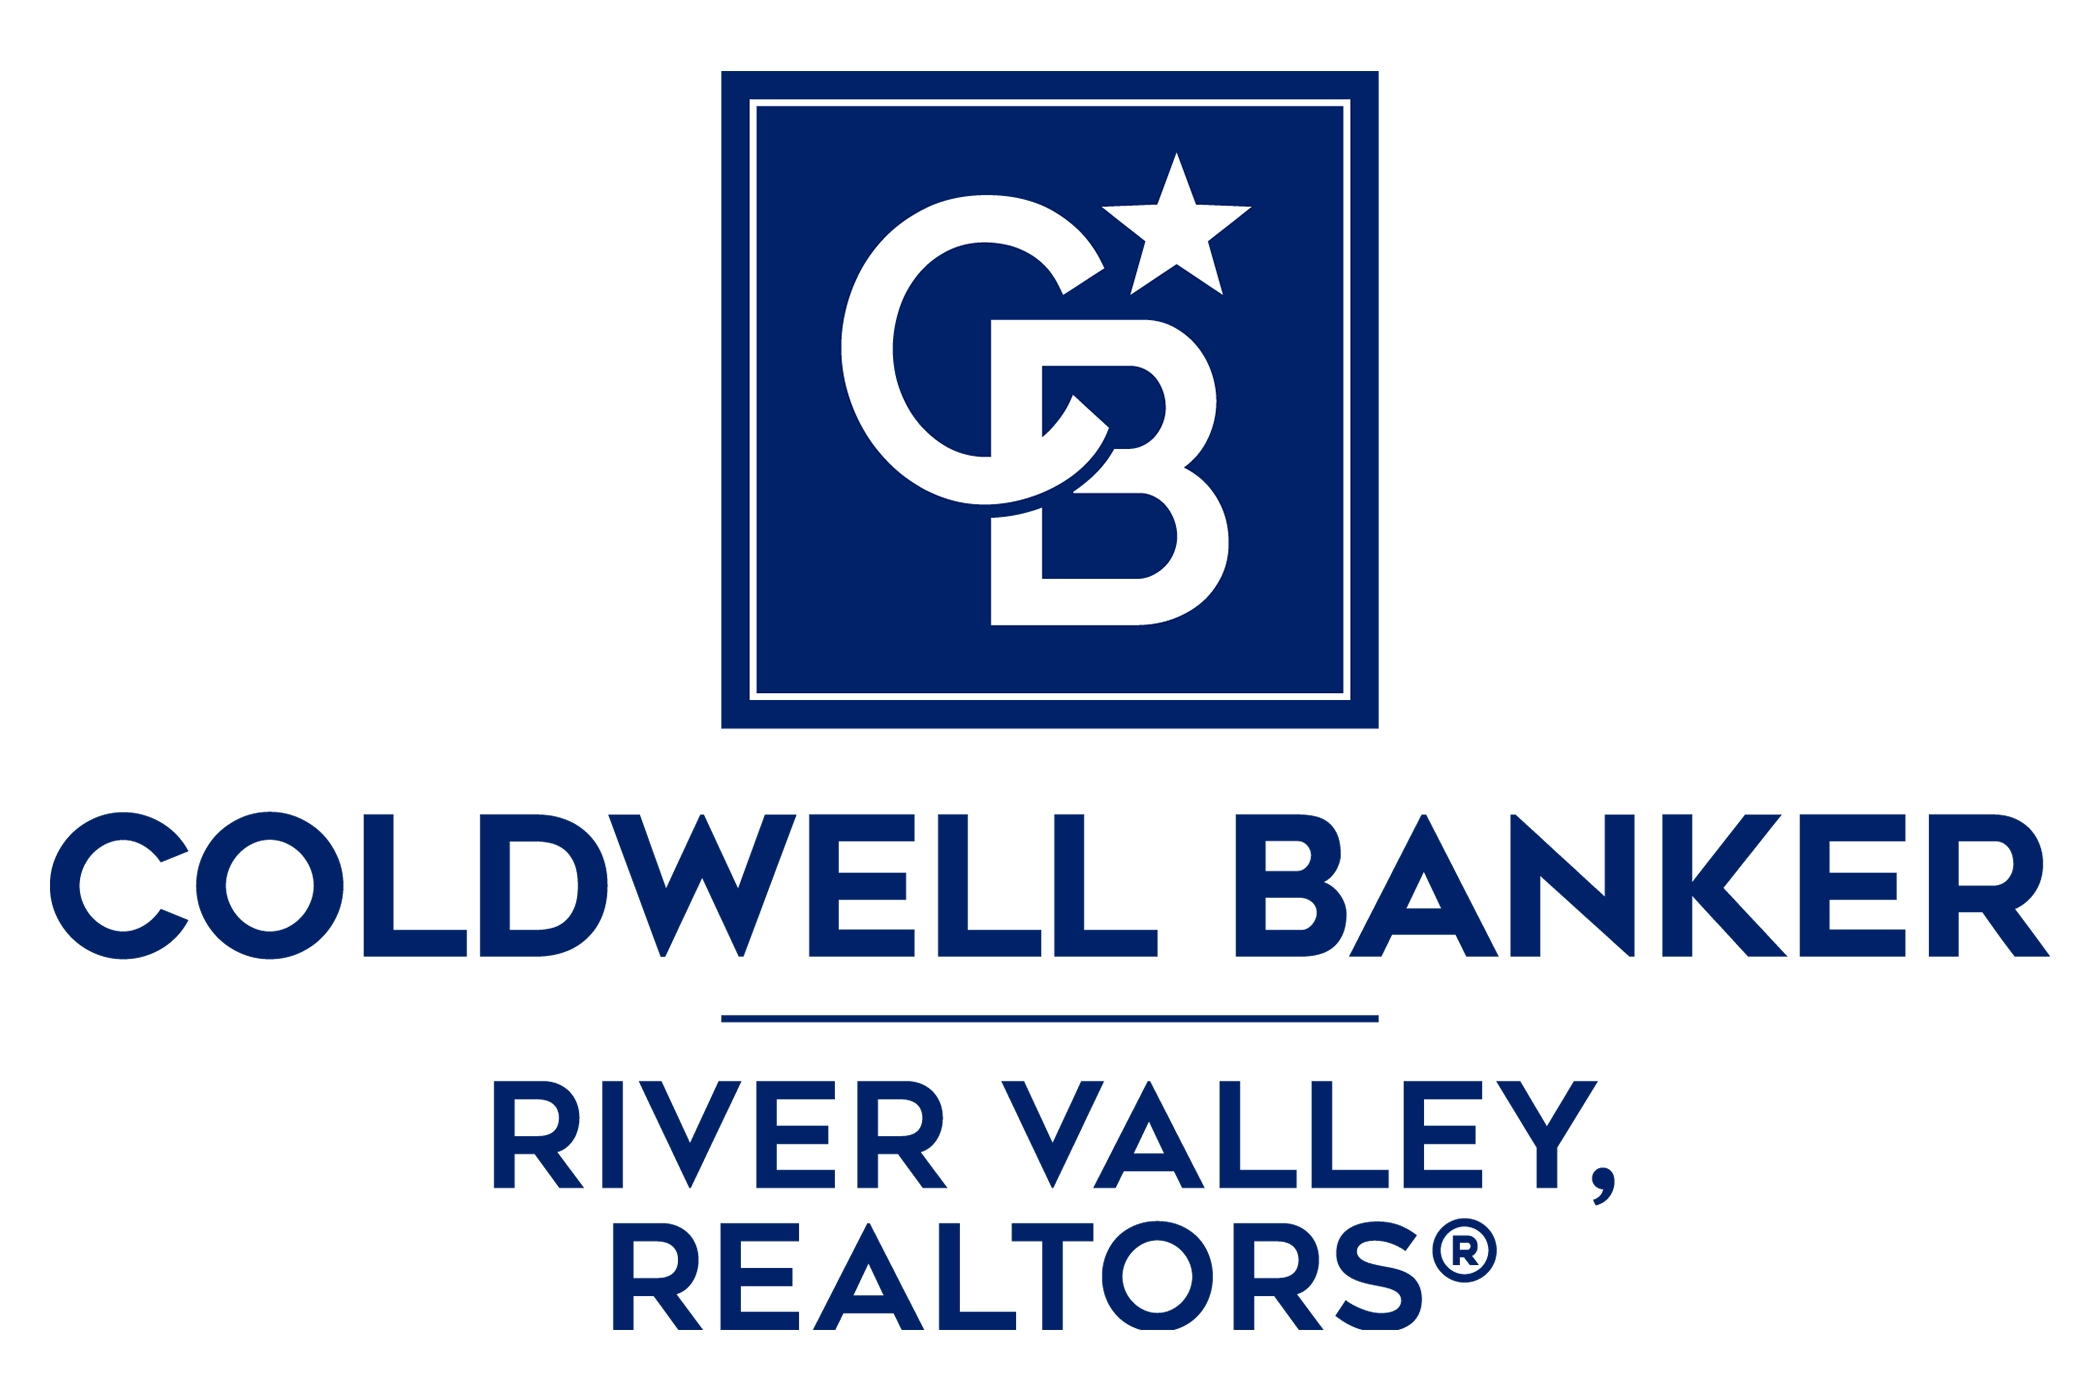 Charlann Thompson - Coldwell Banker River Valley Realtors